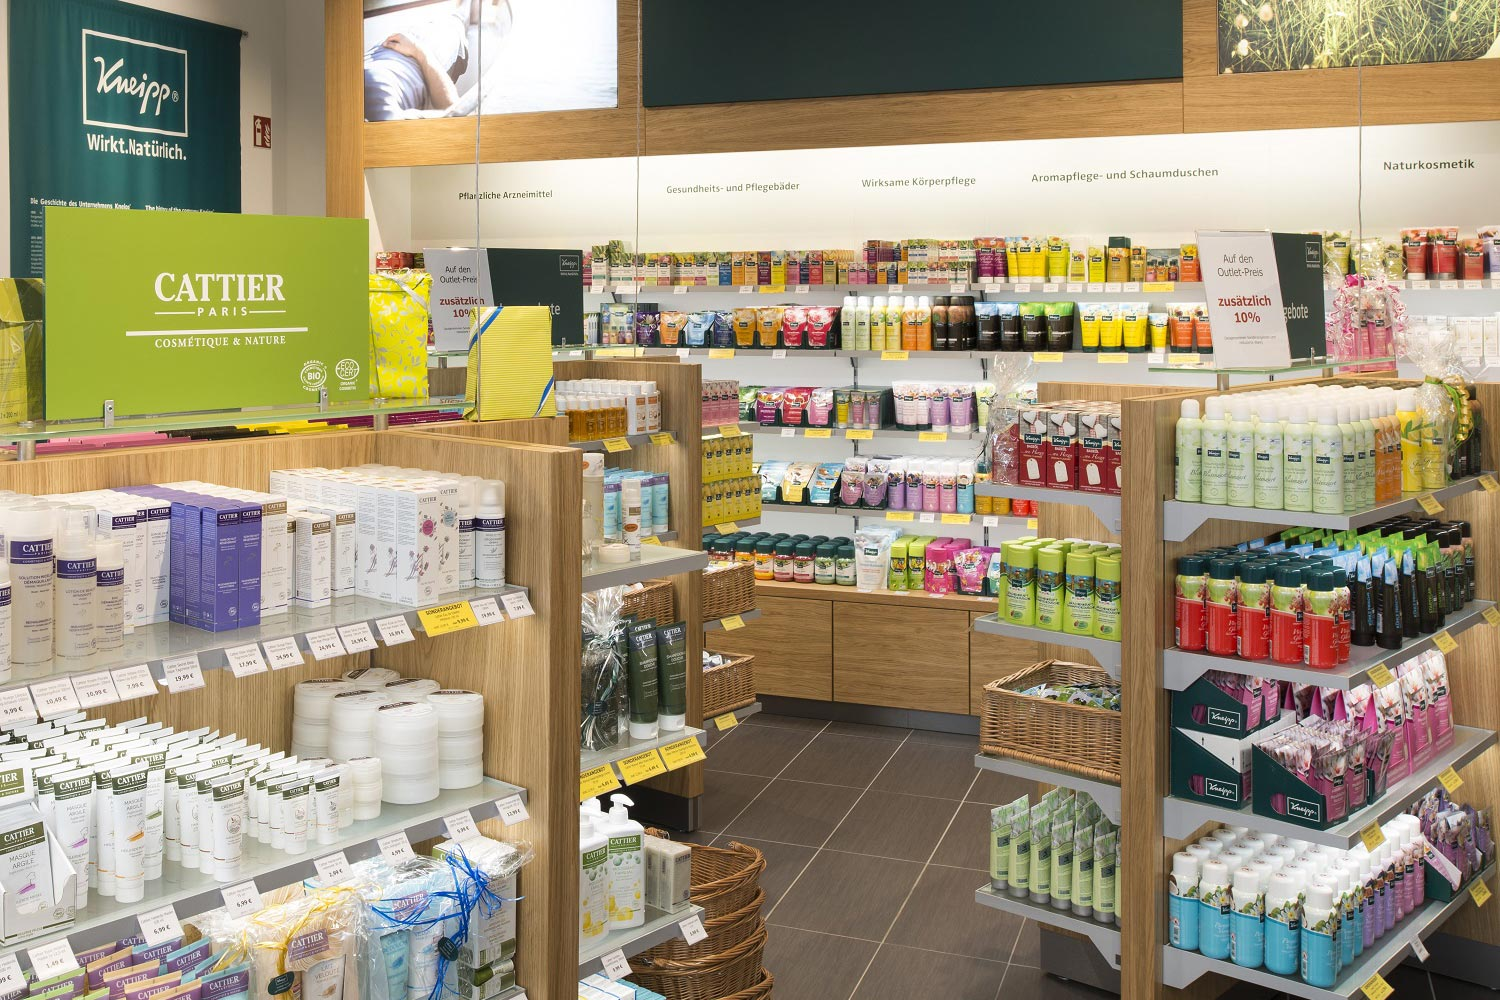 Kneipp im LUV SHOPPING in Lübeck